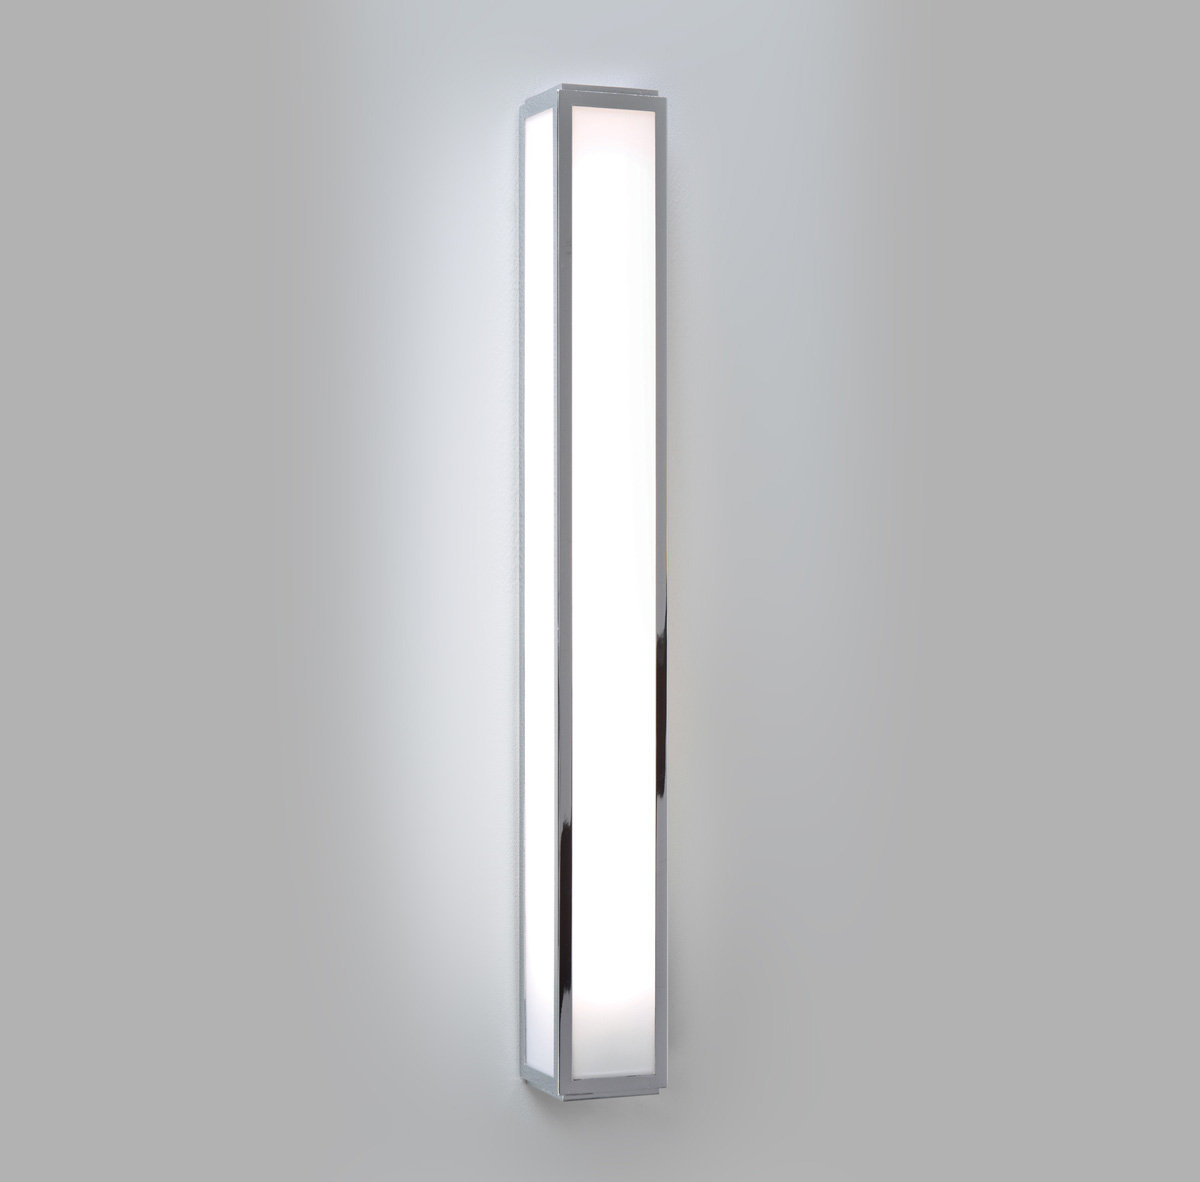 ASTRO MASHIKO 600 0878 Bathroom wall light 1 x 24W HO T5 CFL Polished Chrome